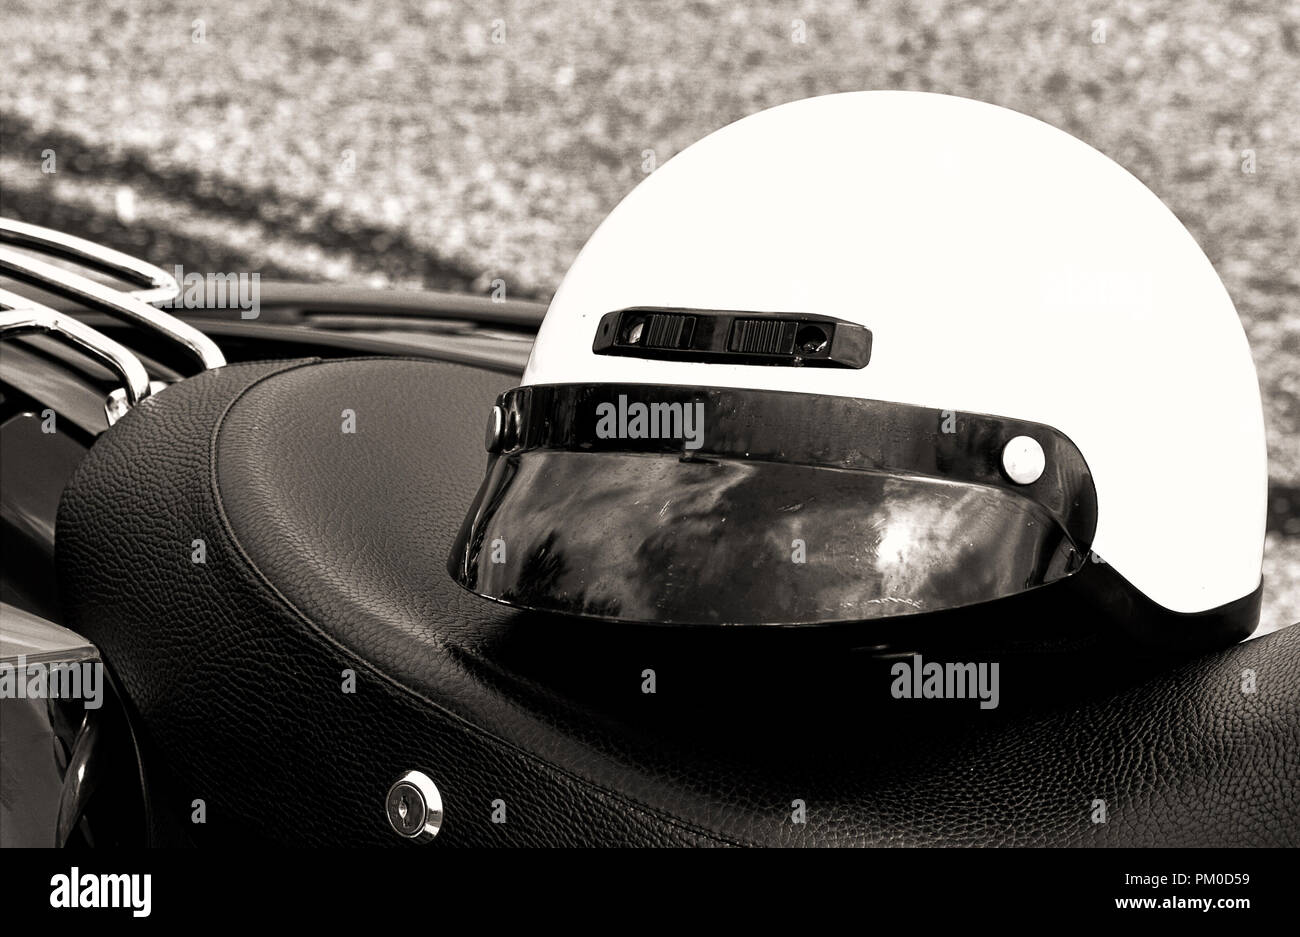 Closeup of motorcycle headlights, helmet in black and white. - Stock Image